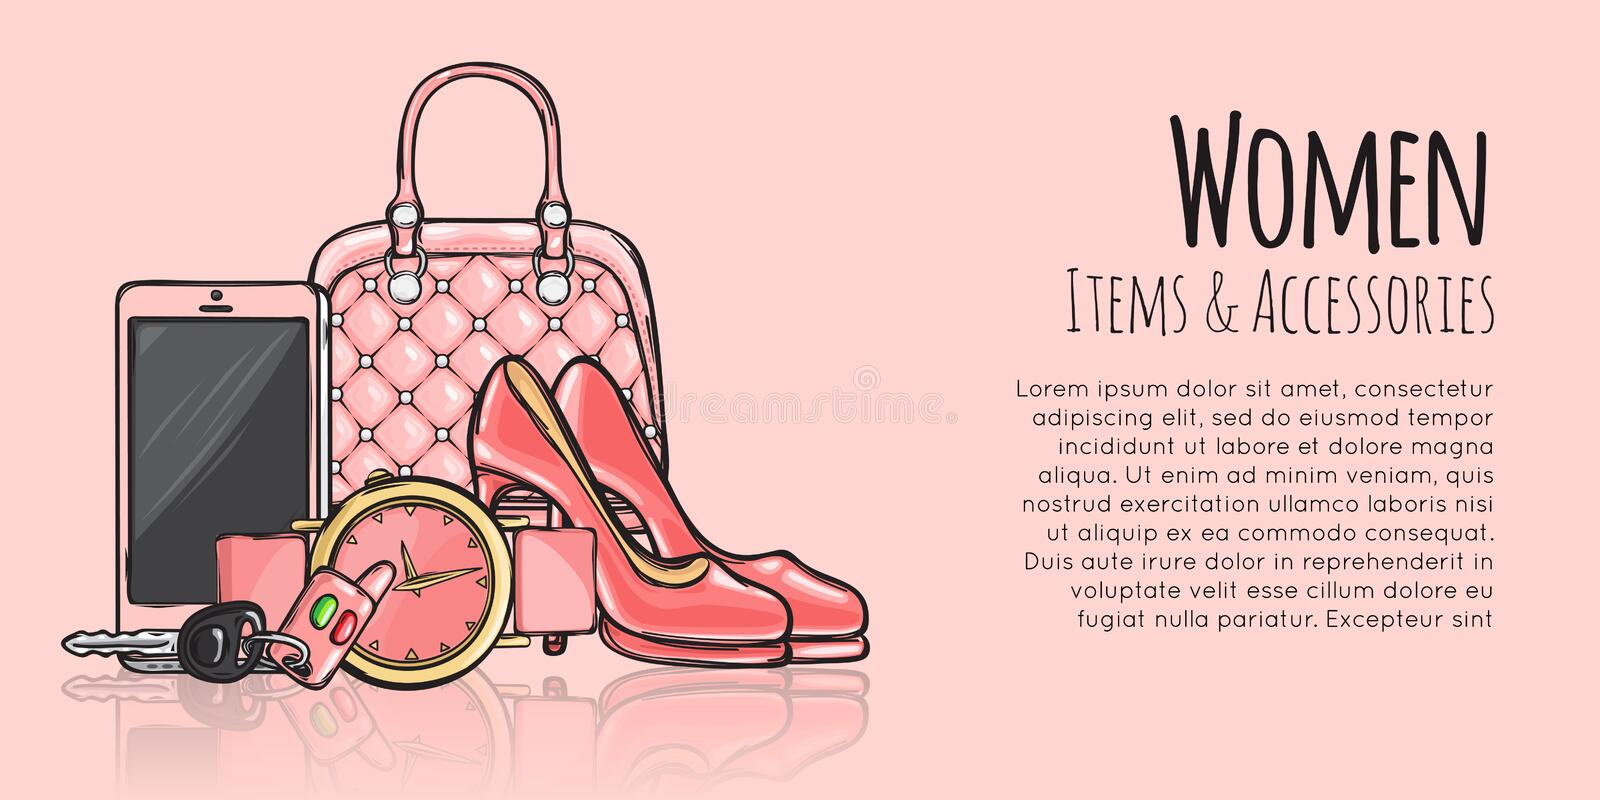 Women Items and Accessories Fashionable Web Banner vector illustration